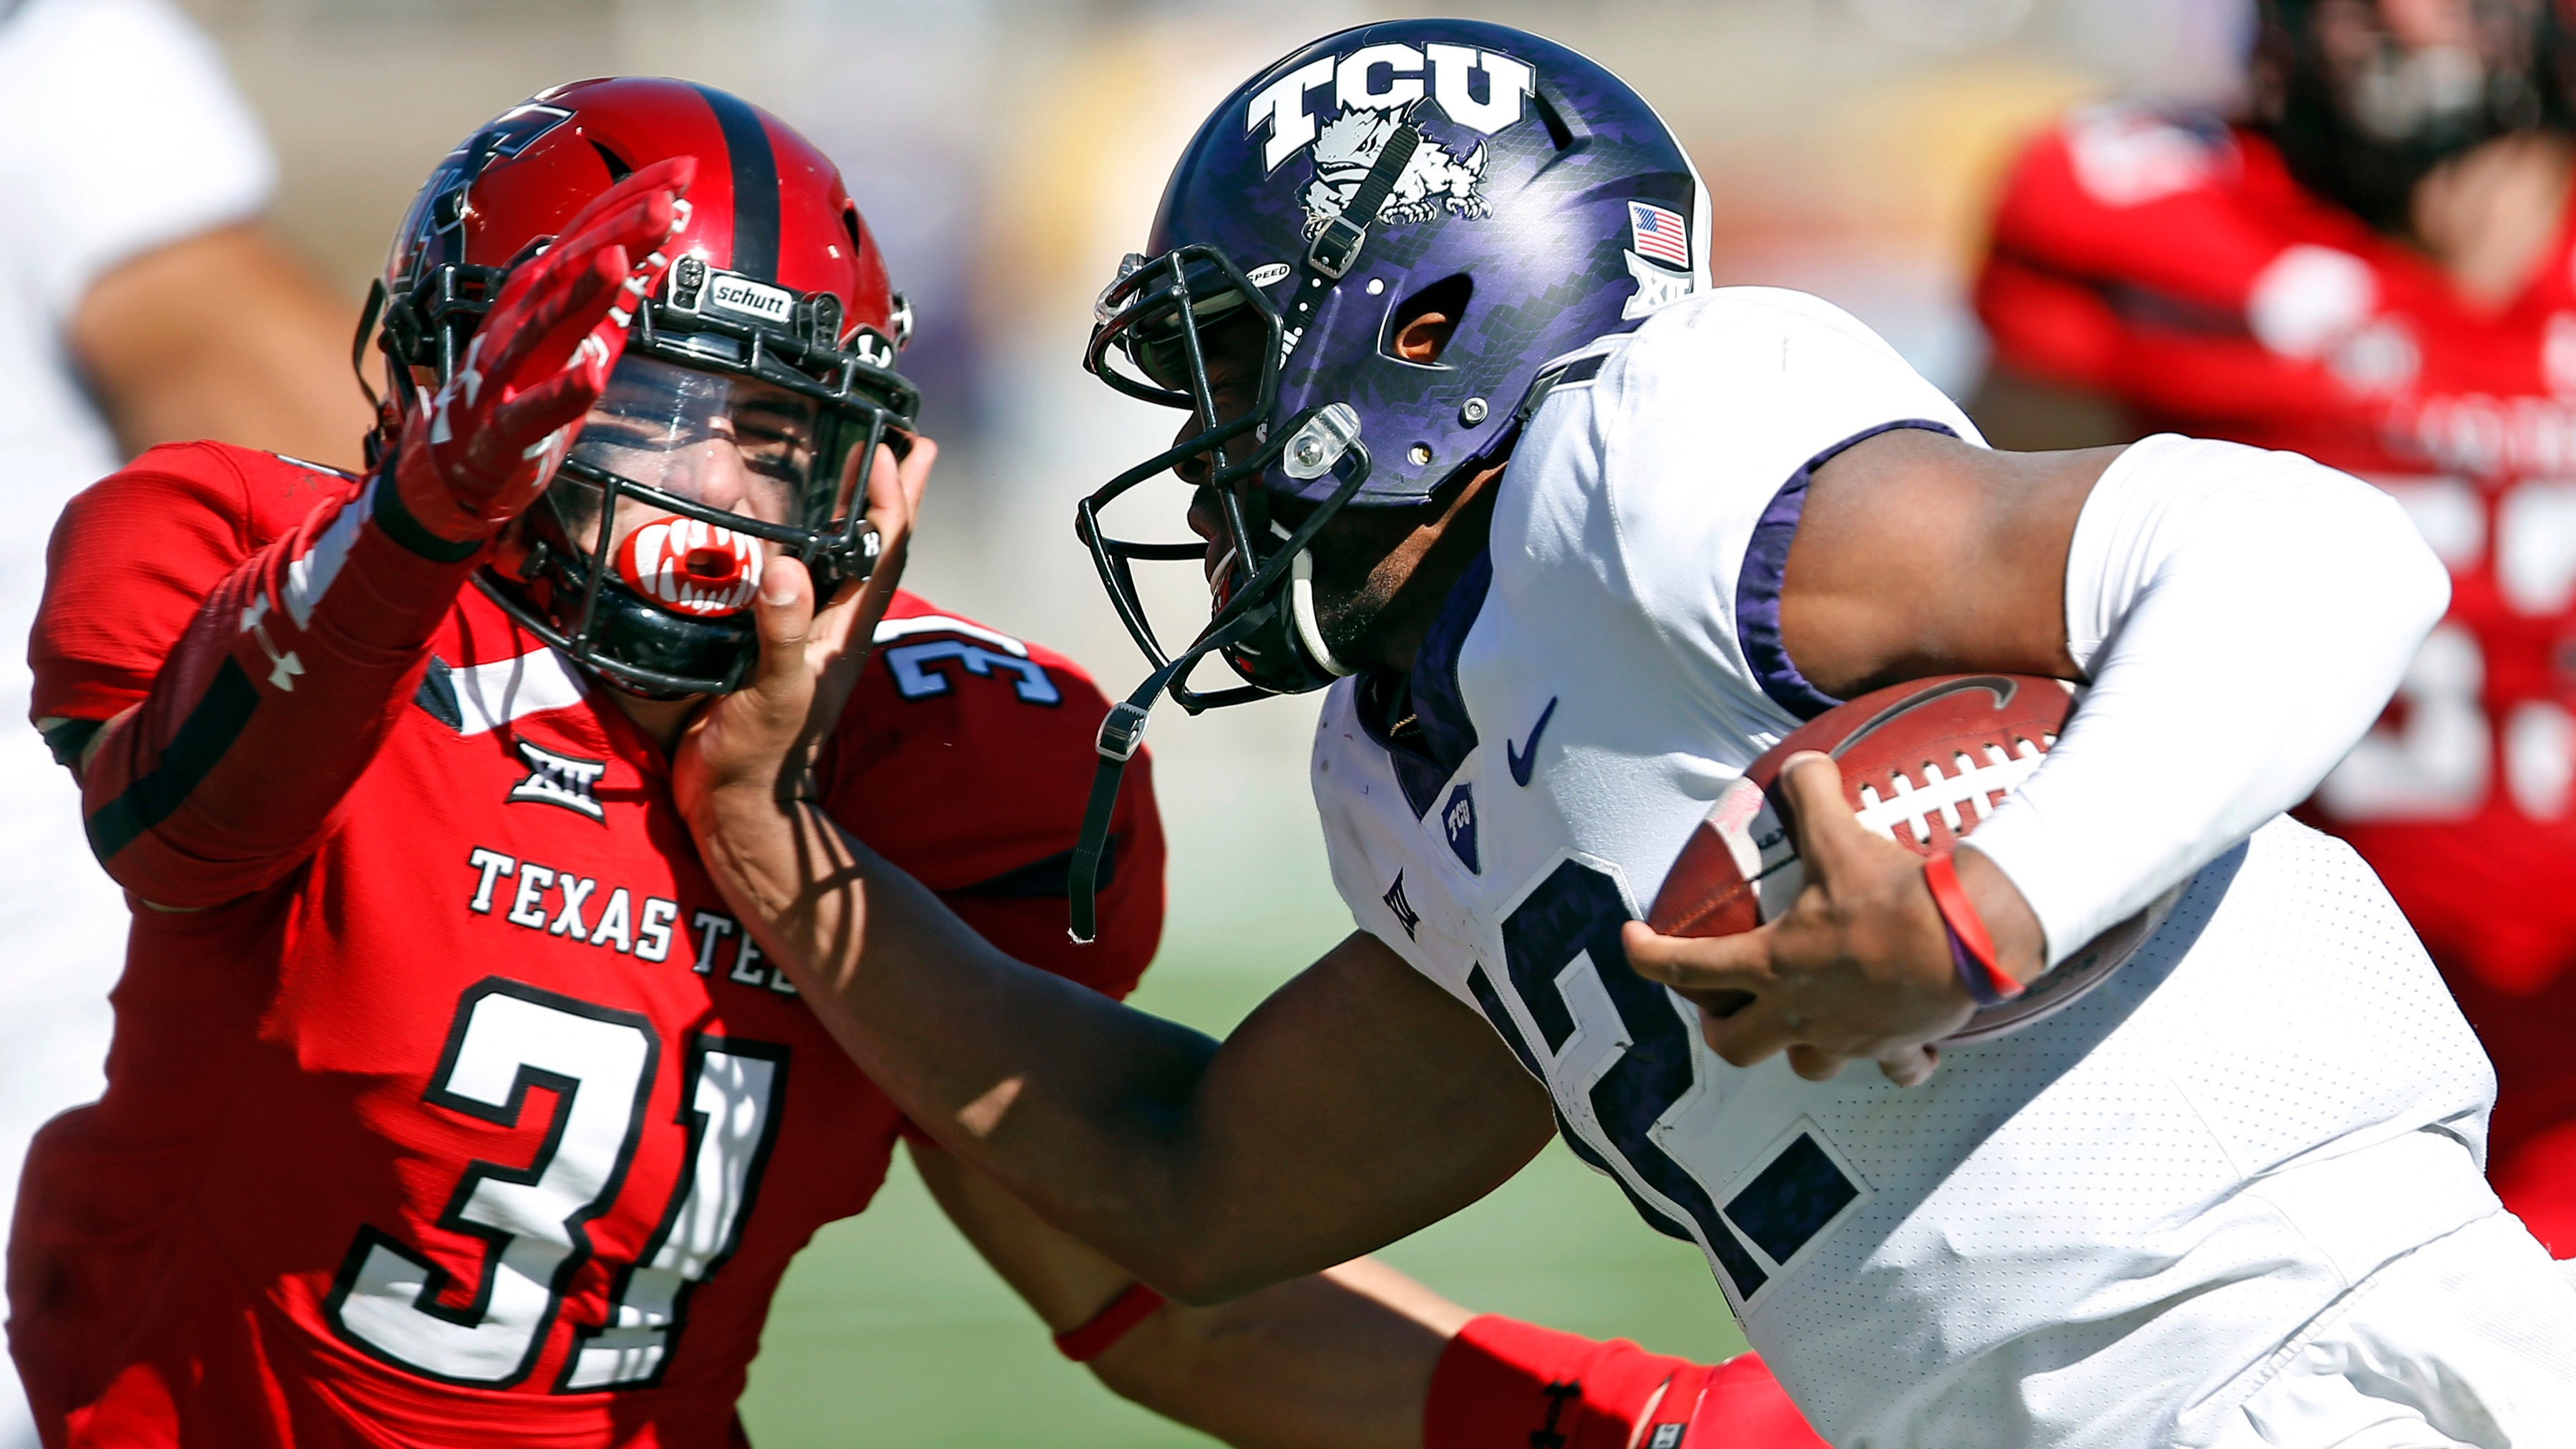 Tcu vs texas tech betting predictions nfl golf betting tracker